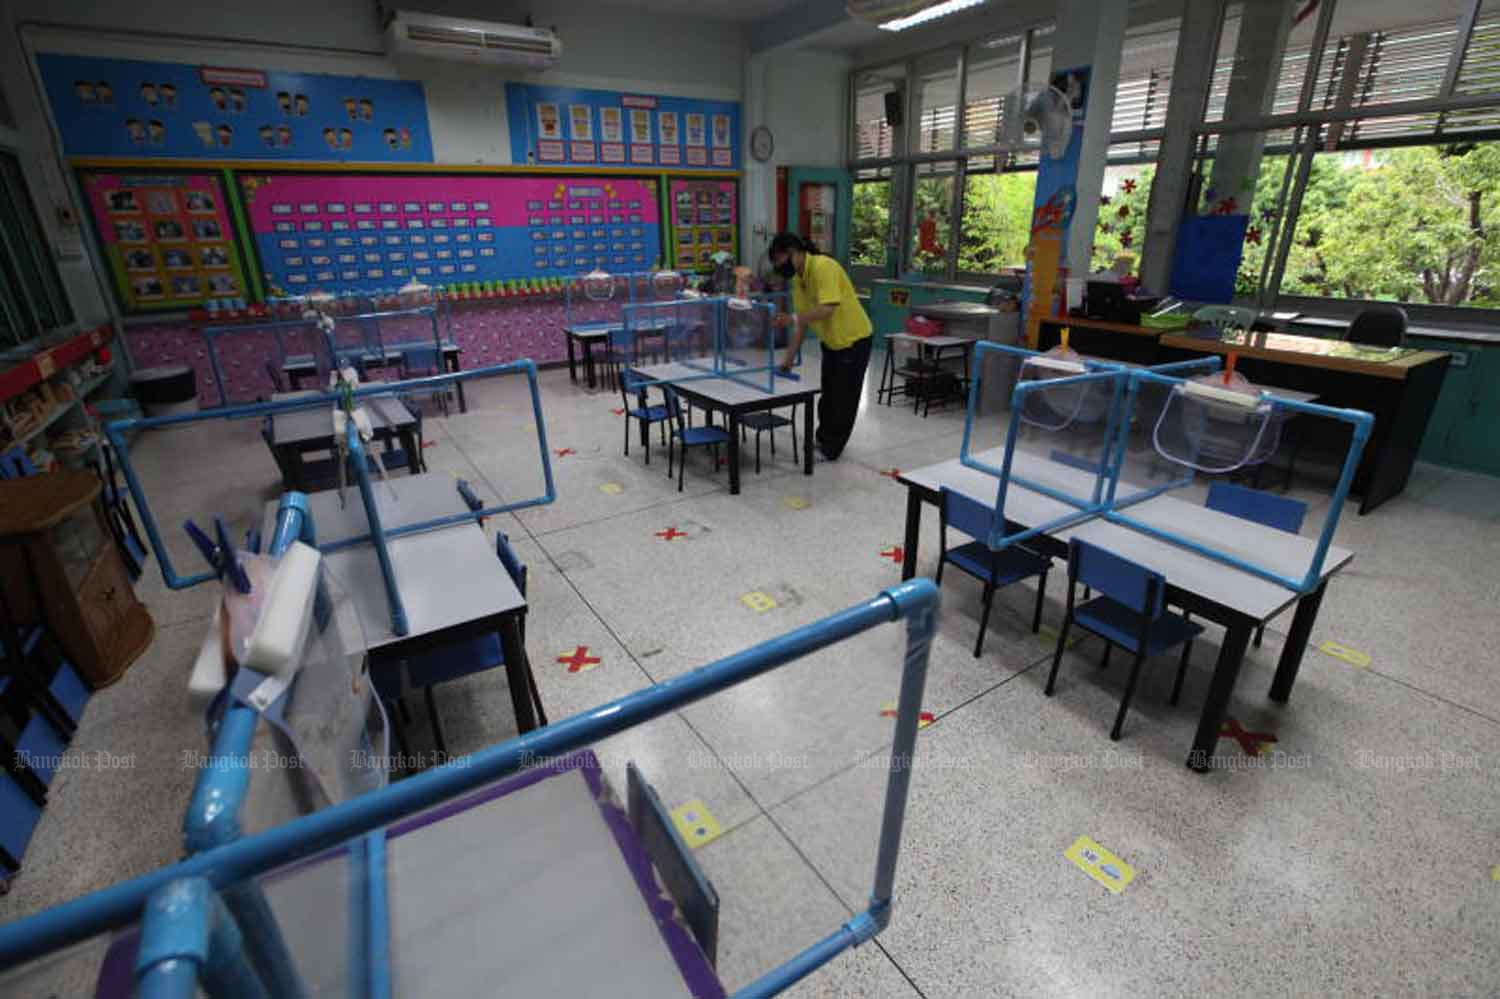 A teacher prepares a classroom for the new term, with careful arrangements to ensure the safety of pupils amid Covid-19 concerns, at Sri Iam Anusorn School in Bang Na district, Bangkok, on Tuesday. (Photo: Arnun Chonmahatrakool)